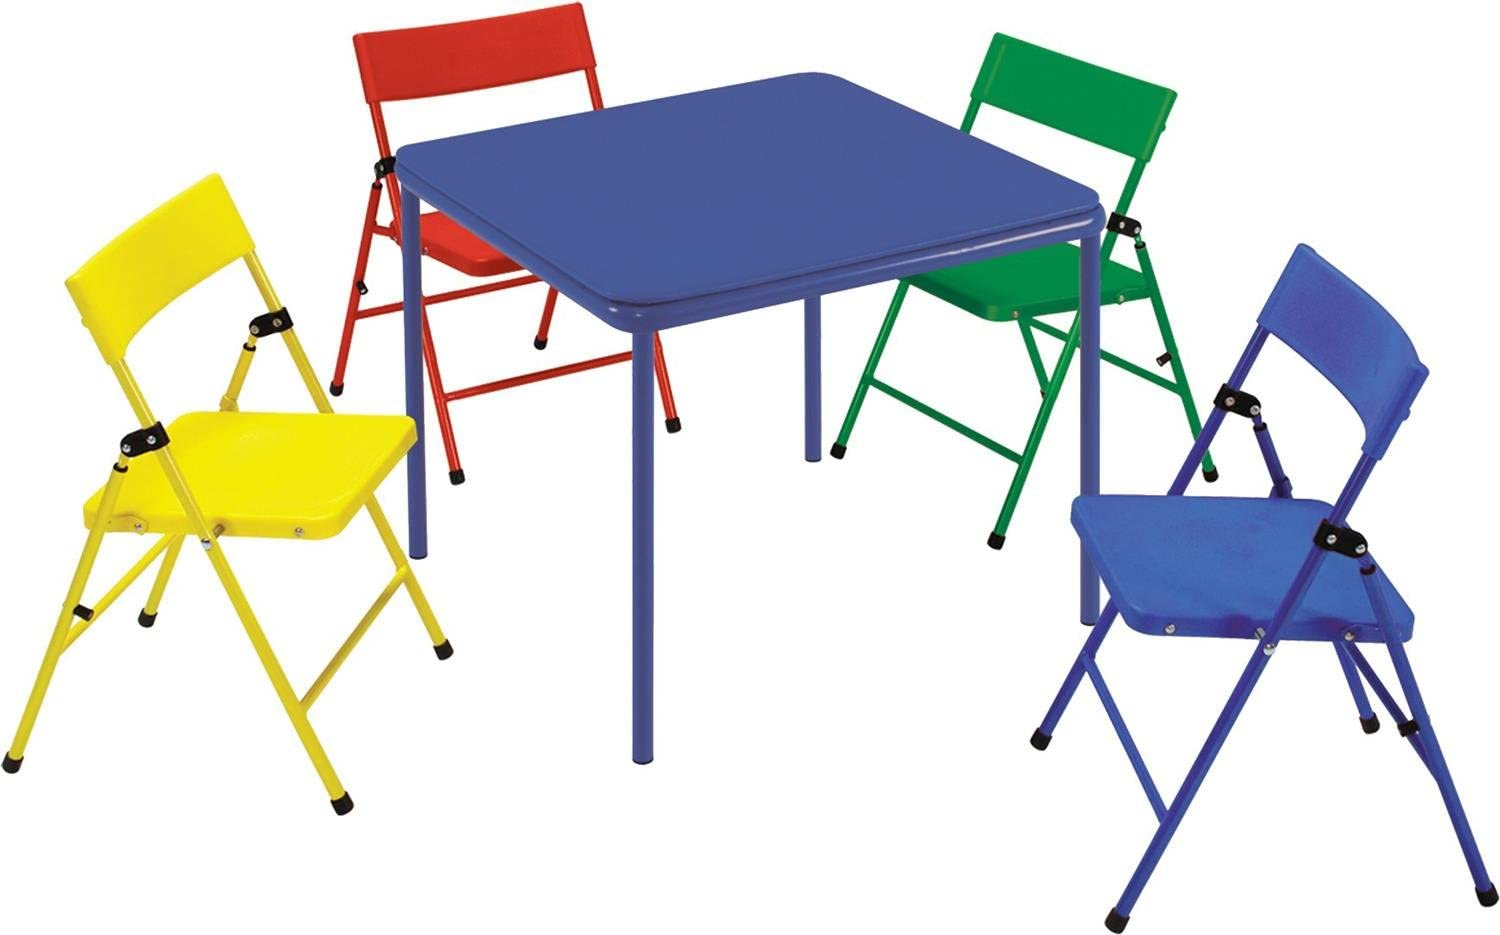 Safety 1st 5-Piece Kid Table and Chair Set  sc 1 st  Amazon.com & Kids\u0027 Table \u0026 Chair Sets | Amazon.com